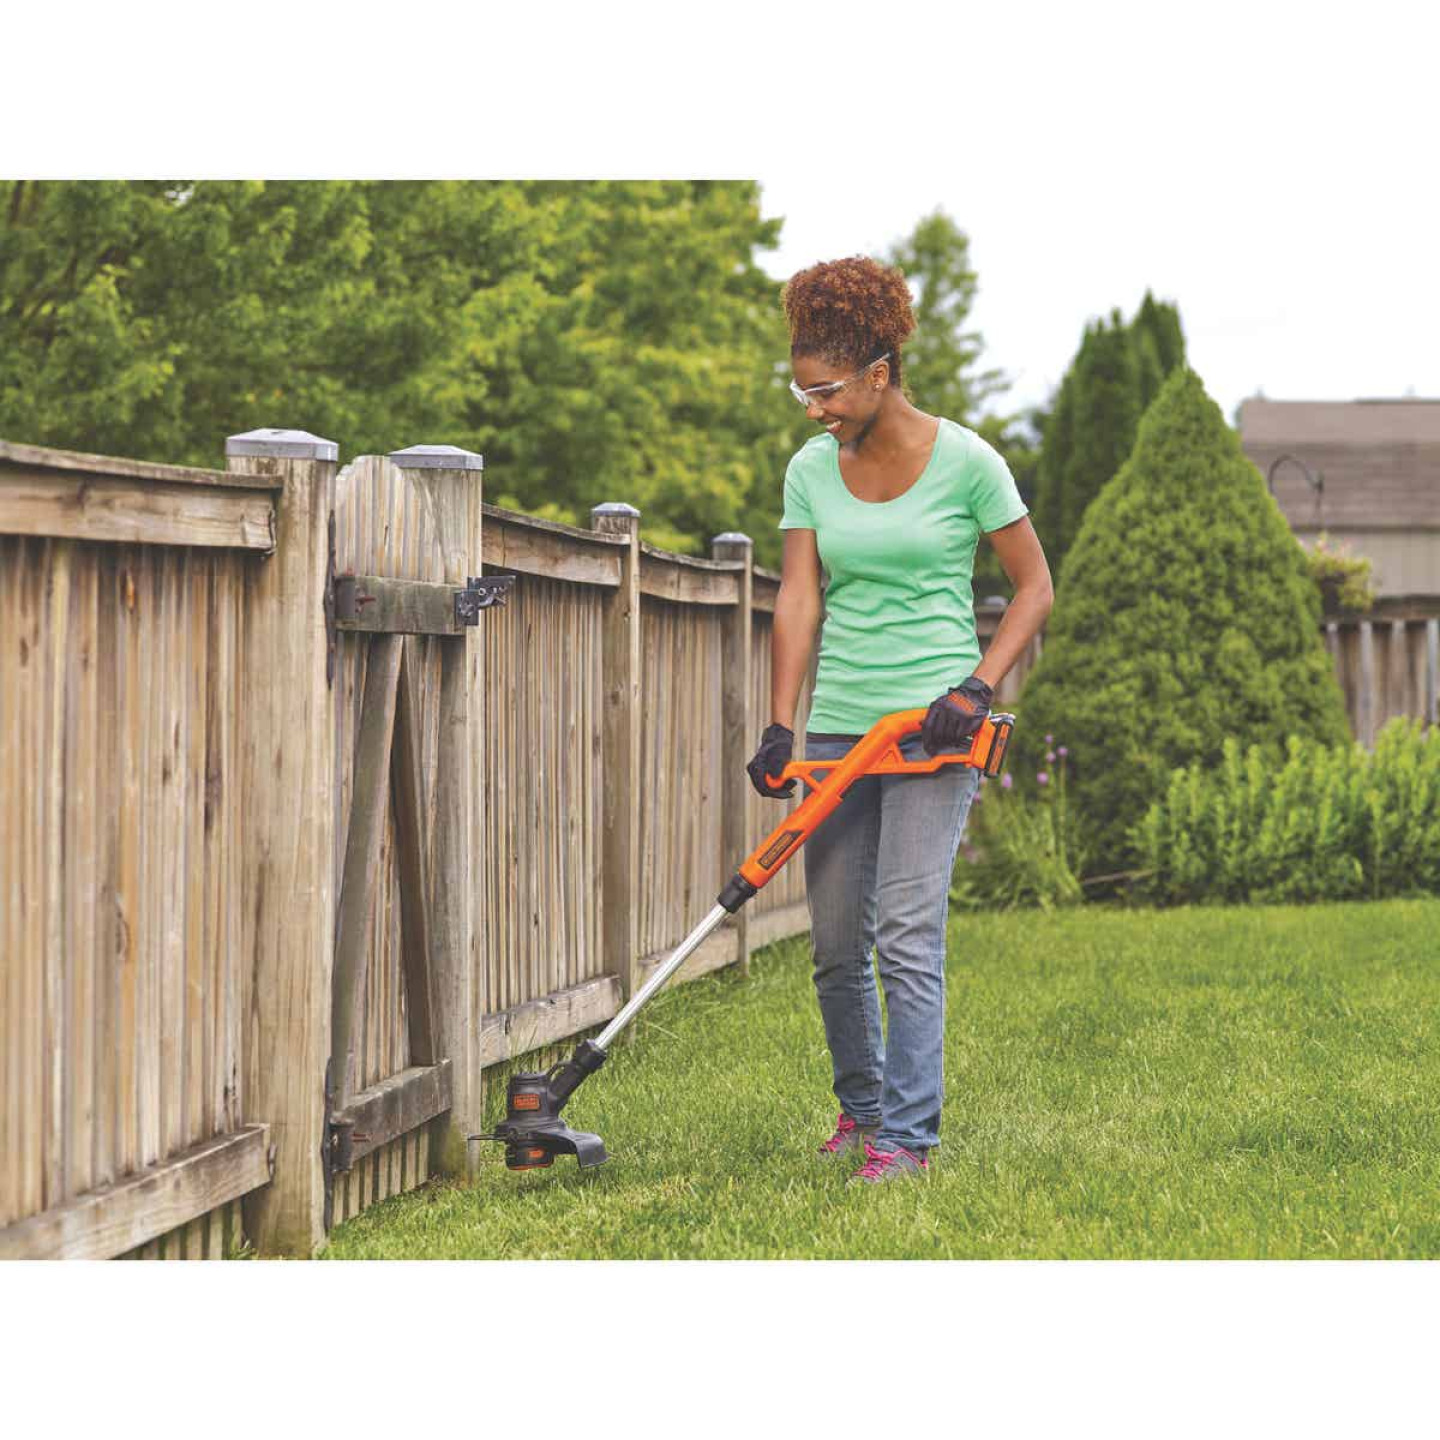 Black & Decker 20V MAX 10 In. Lithium Ion Straight Cordless String Trimmer/Edger Image 2